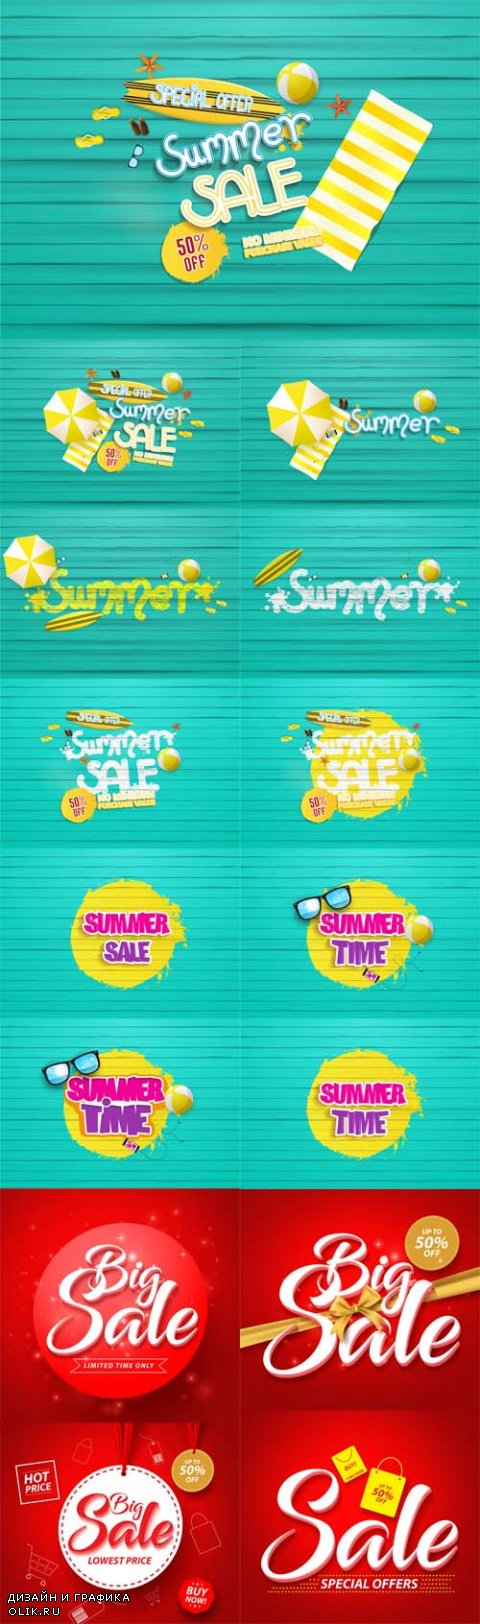 Vector Summer Sale Background with Painted Wooden Floor and Beach Products